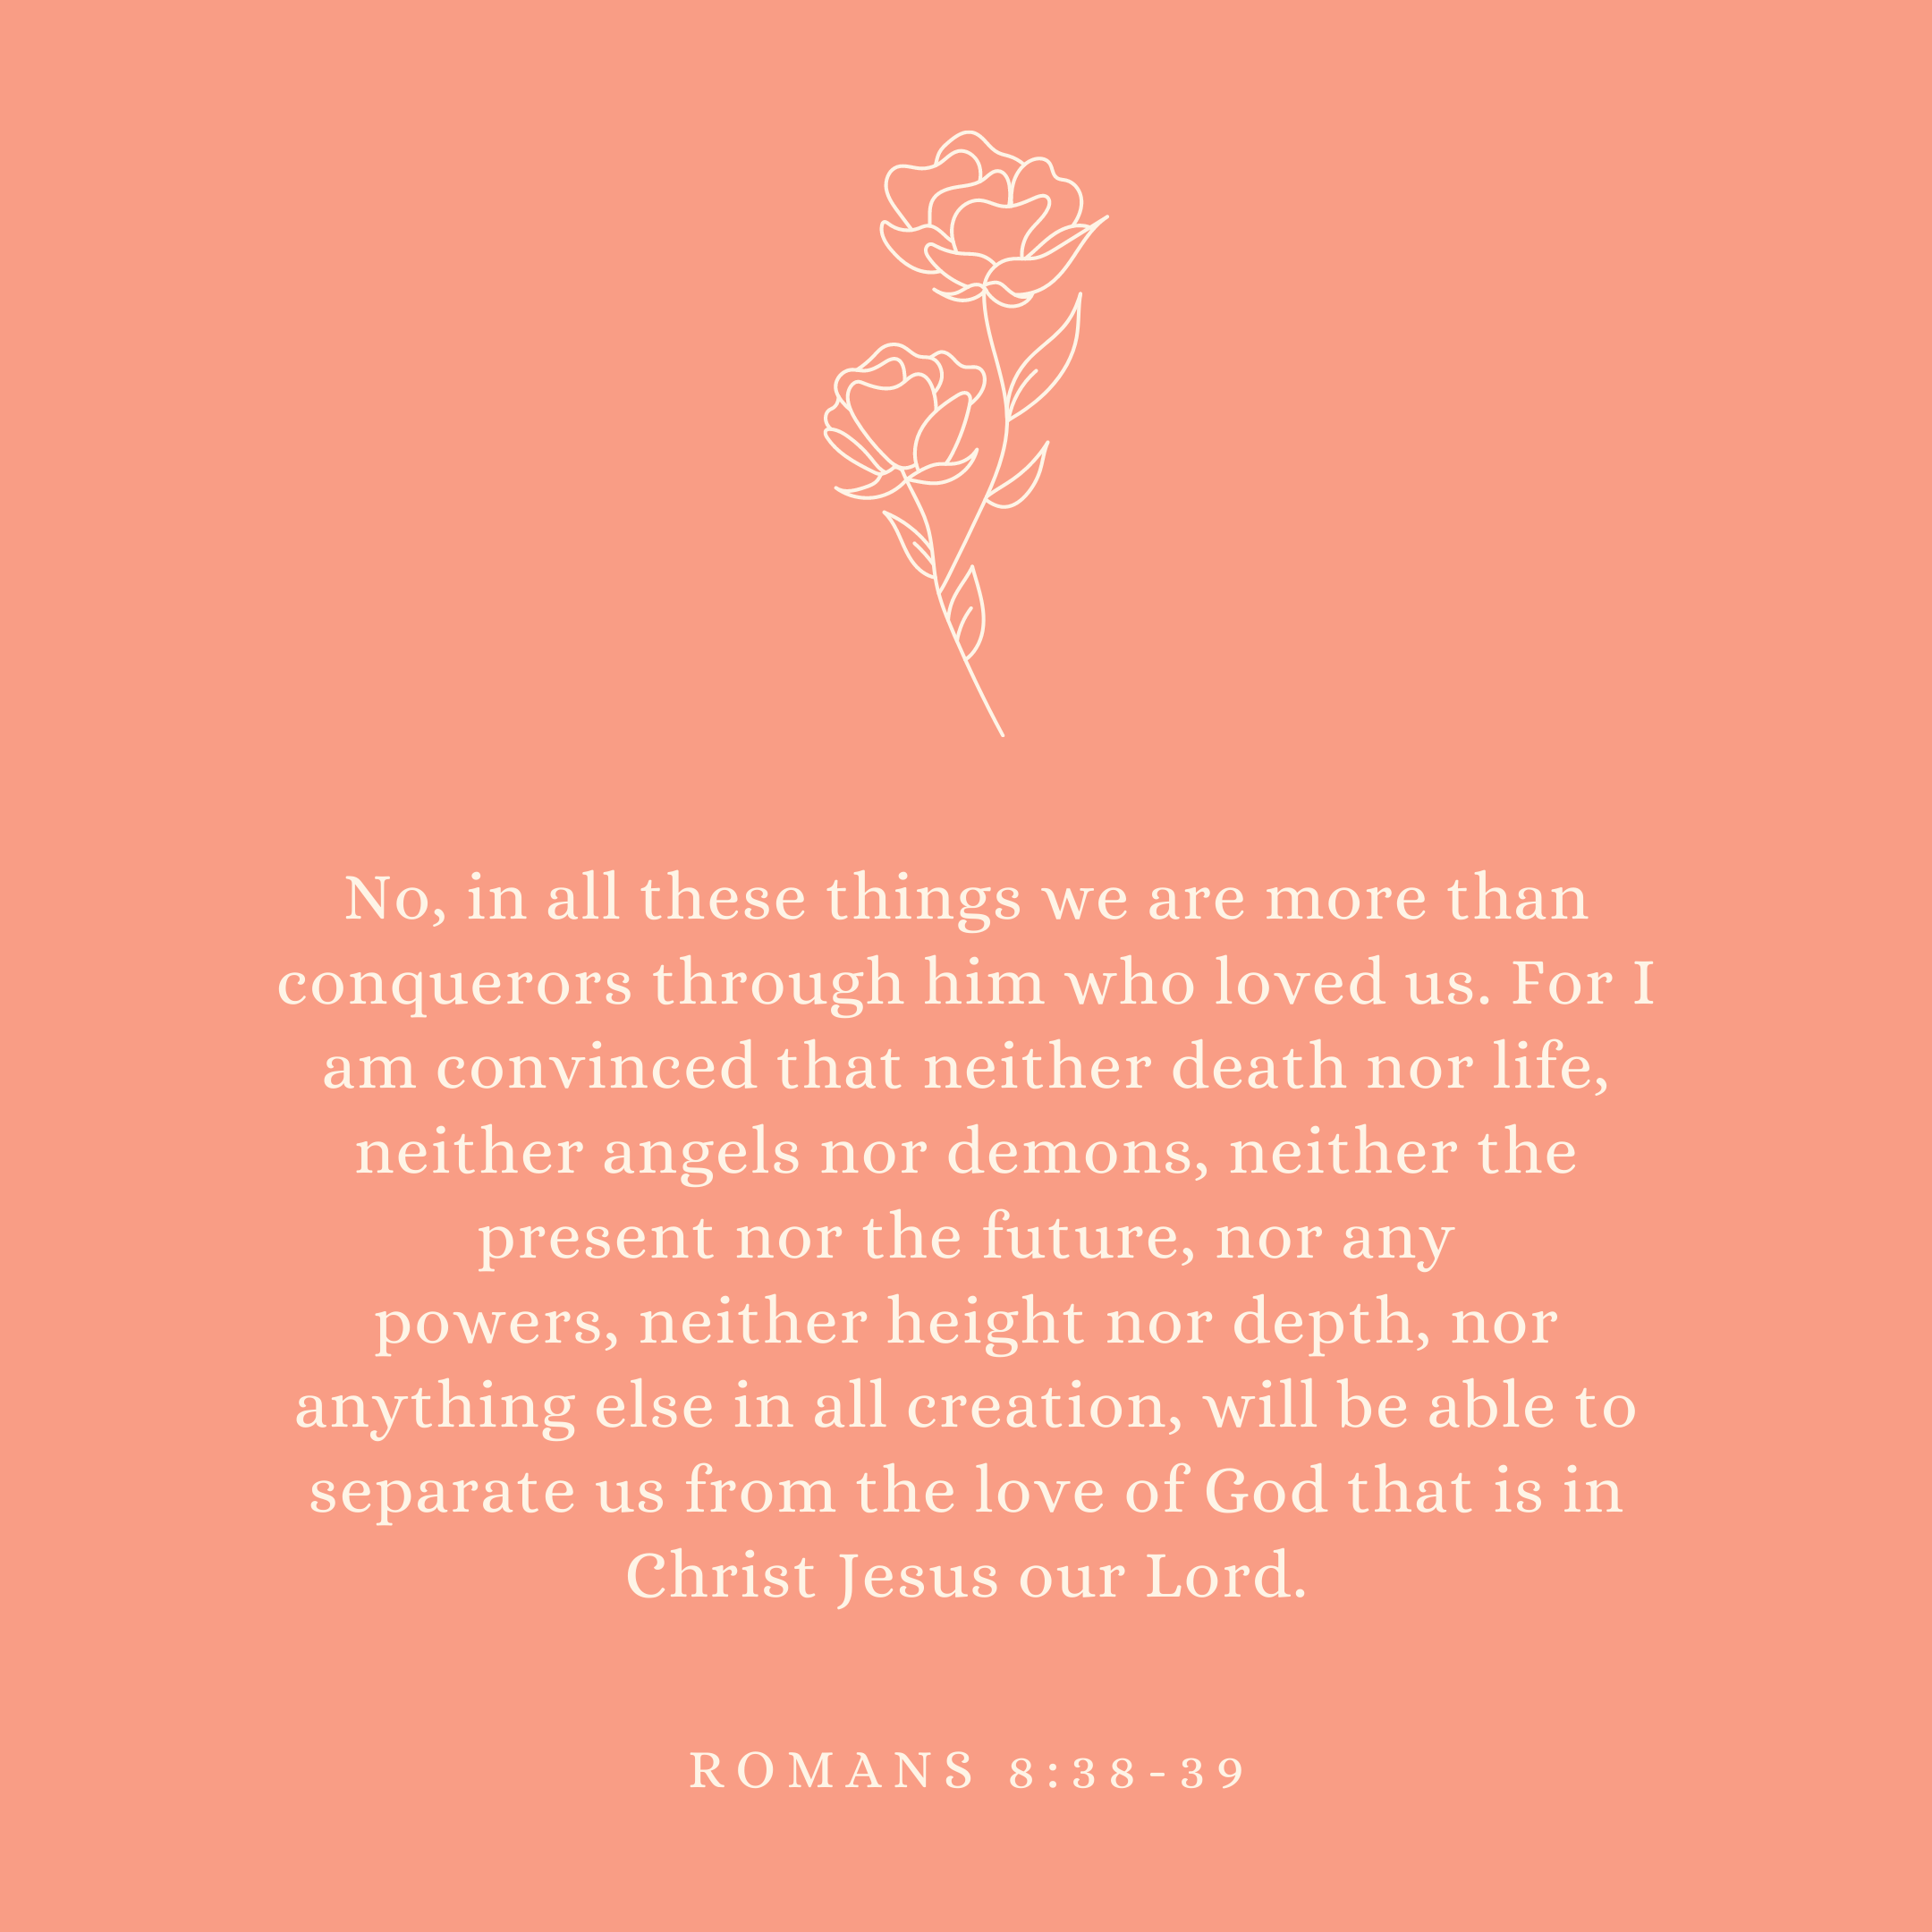 Romans 8:38-39 No, in all these things we are more than conquerors through him who loved us. For I am convinced that neither death nor life, neither angels nor demons, neither the present nor the future, nor any powers, neither height nor depth, nor anything else in all creation, will be able to separate us from the love of God that is in Christ Jesus our Lord.